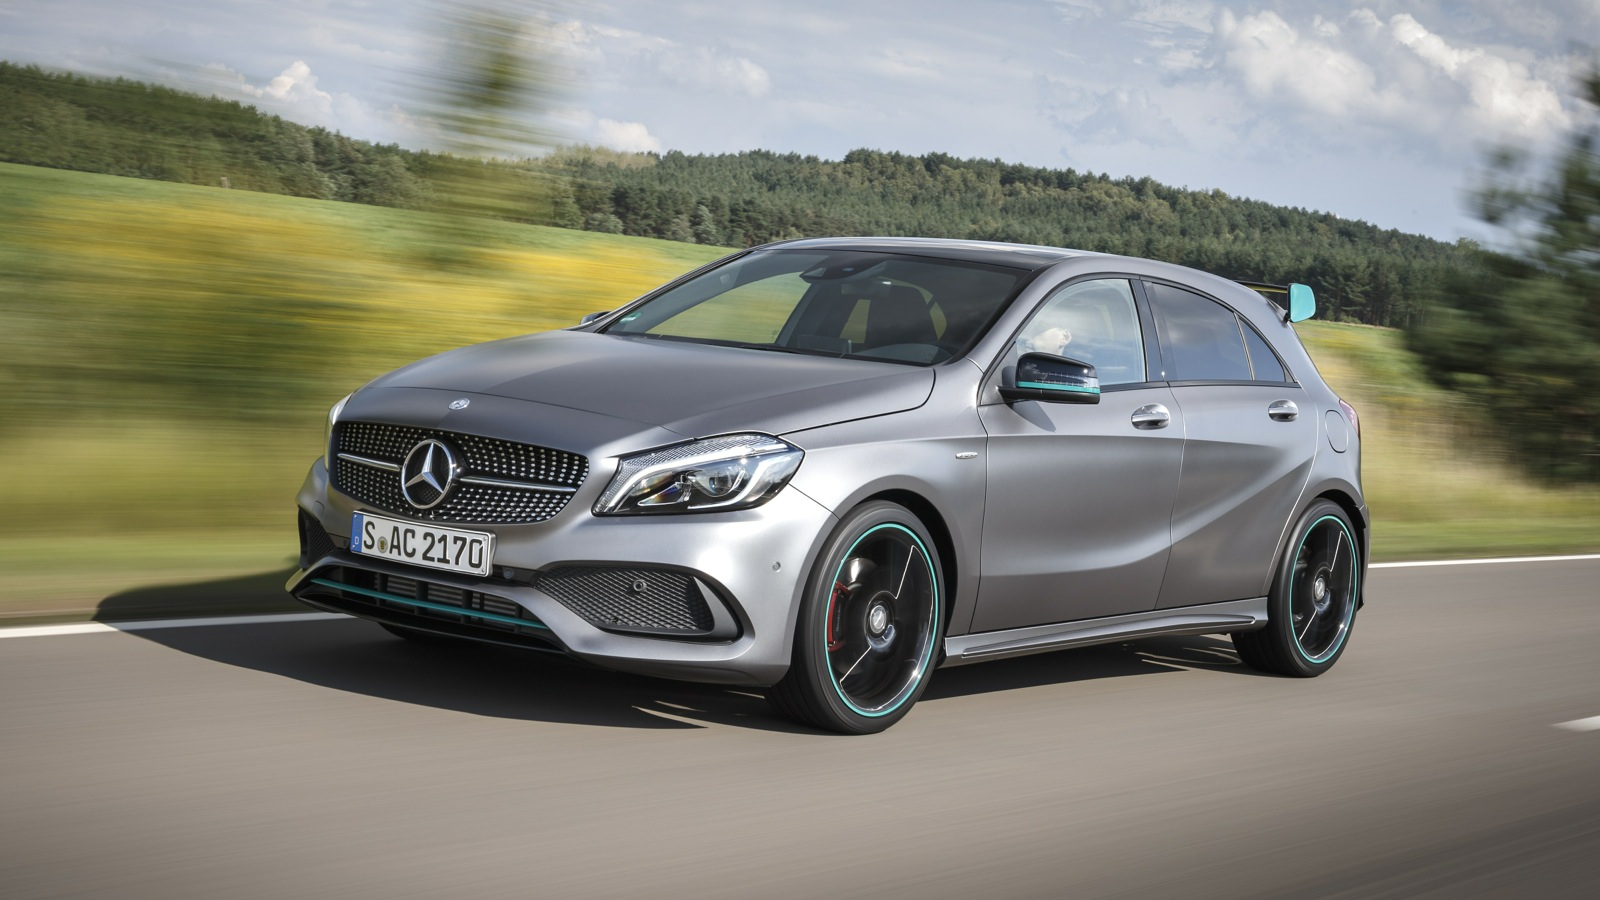 2016 mercedes benz a250 sport 4matic review motorsport for Mercedes benz a class price